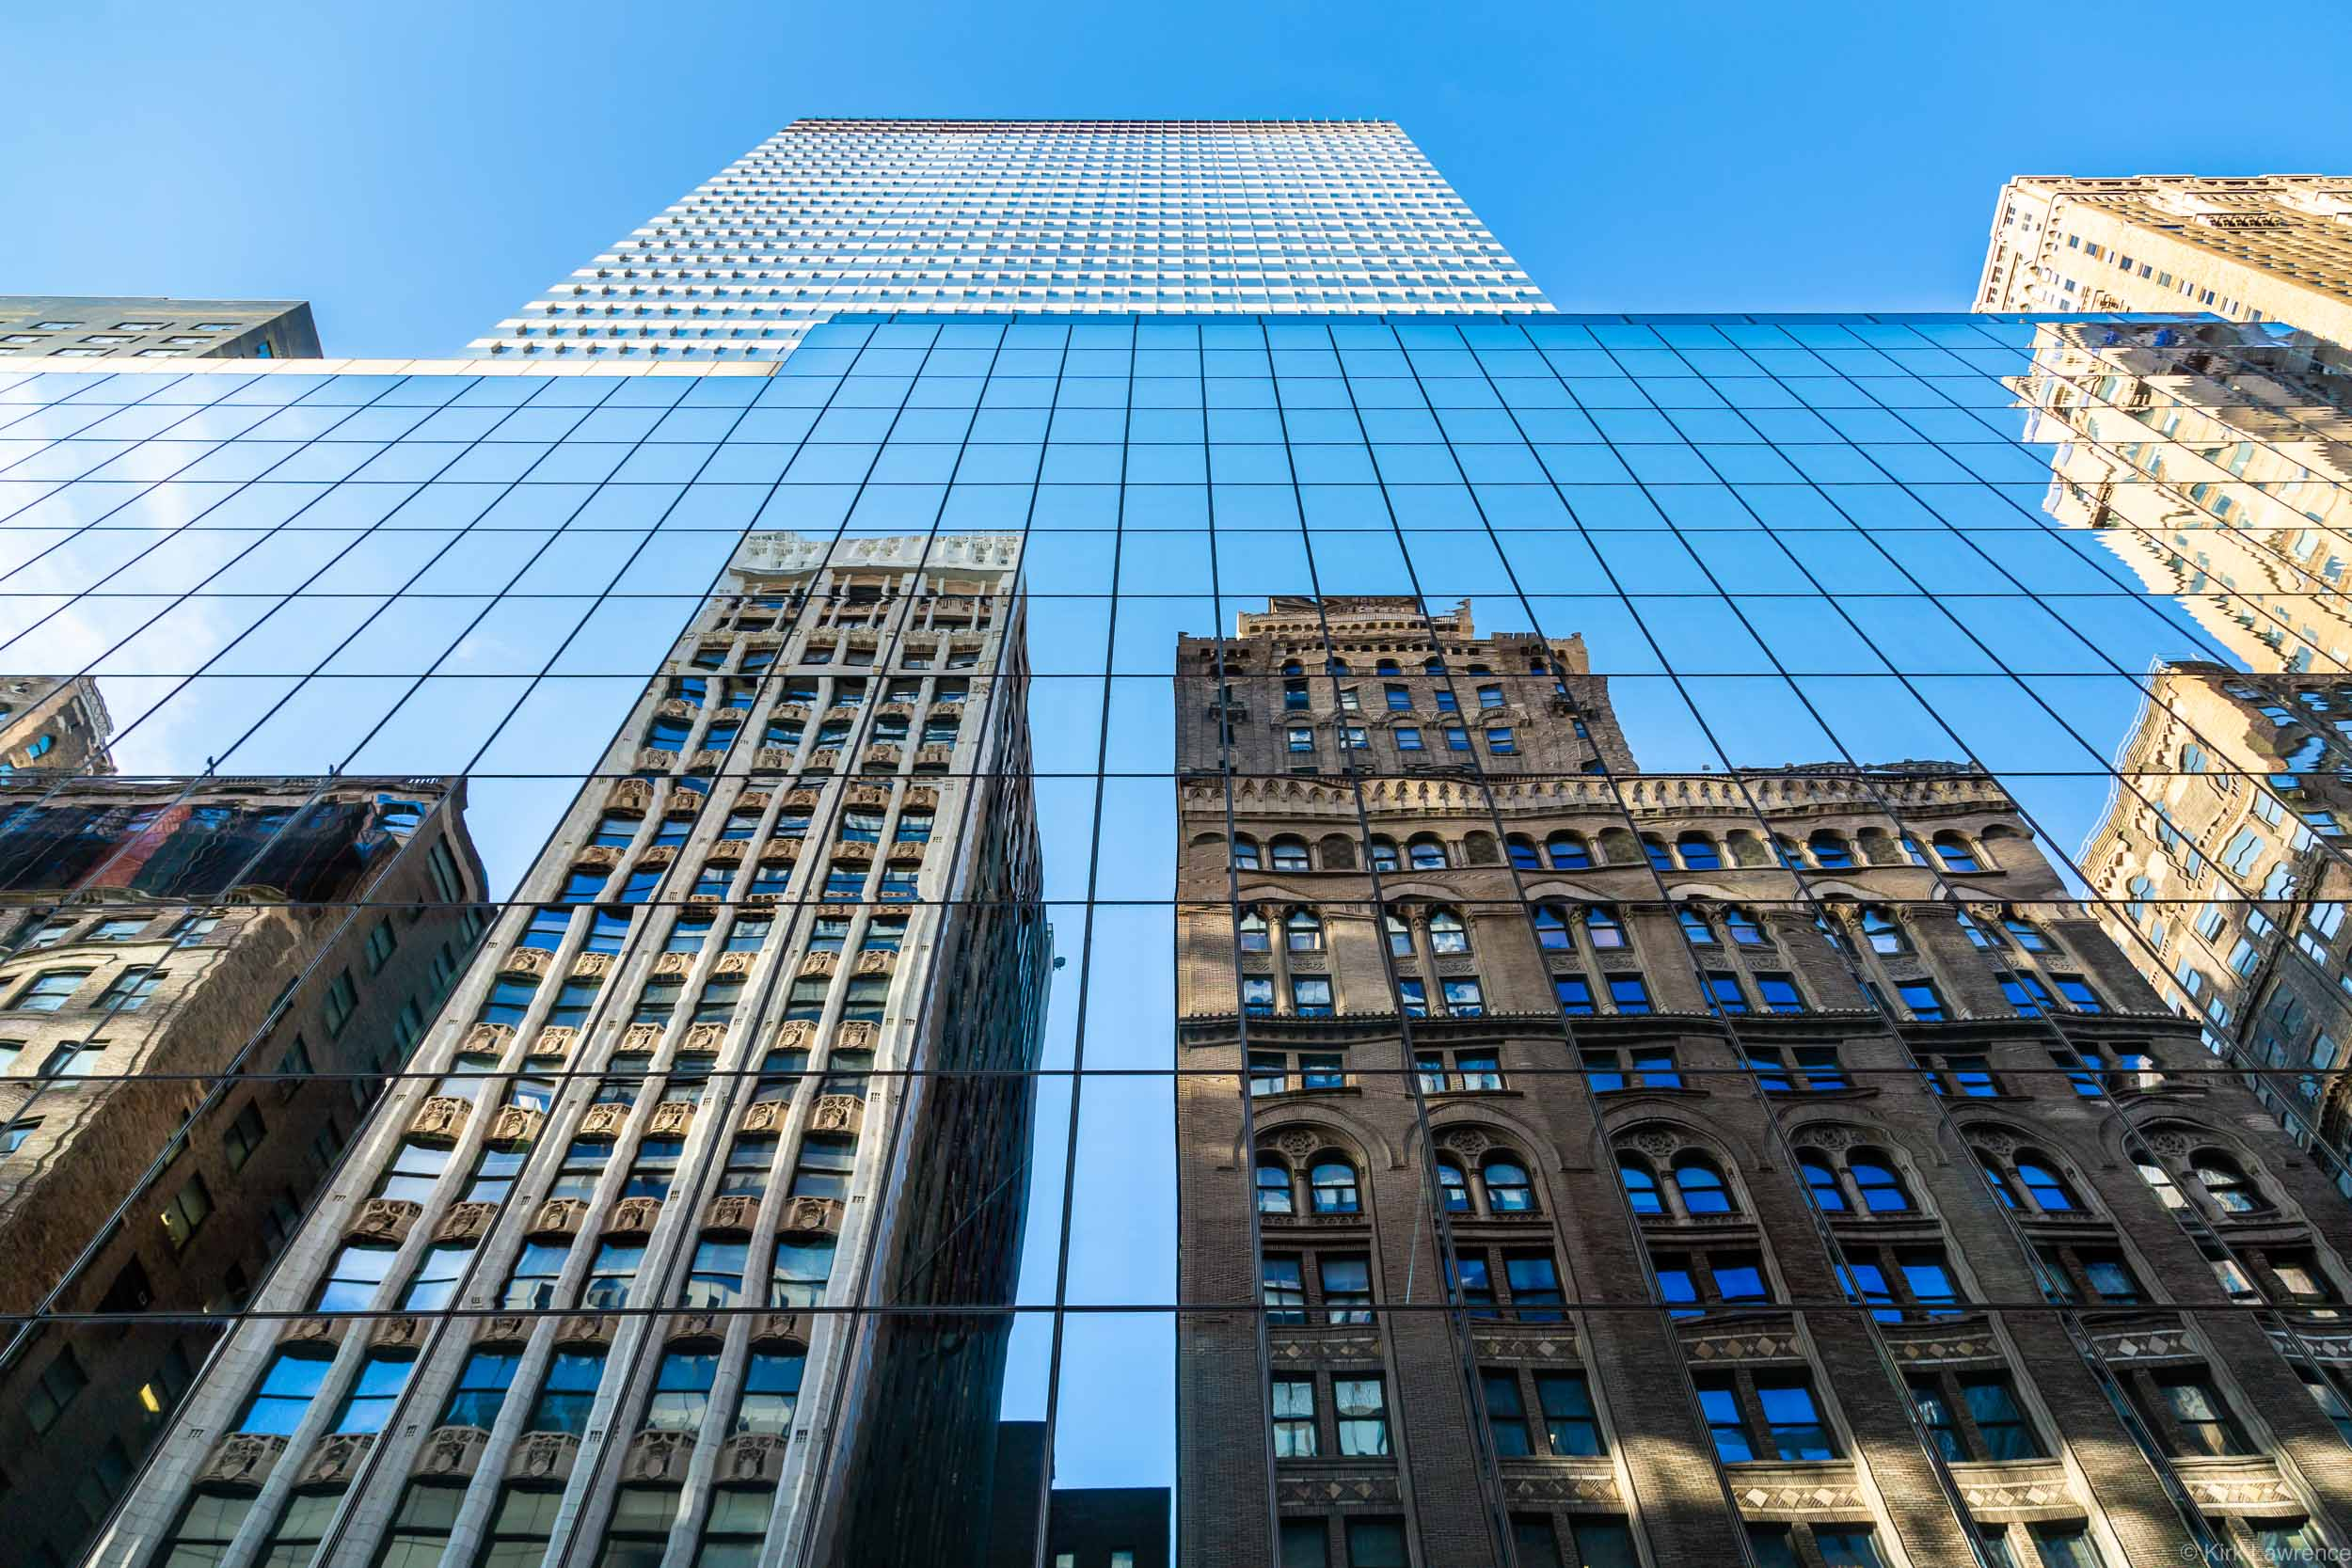 reflection_skyscraper_New_York_City_blue_sky.jpg